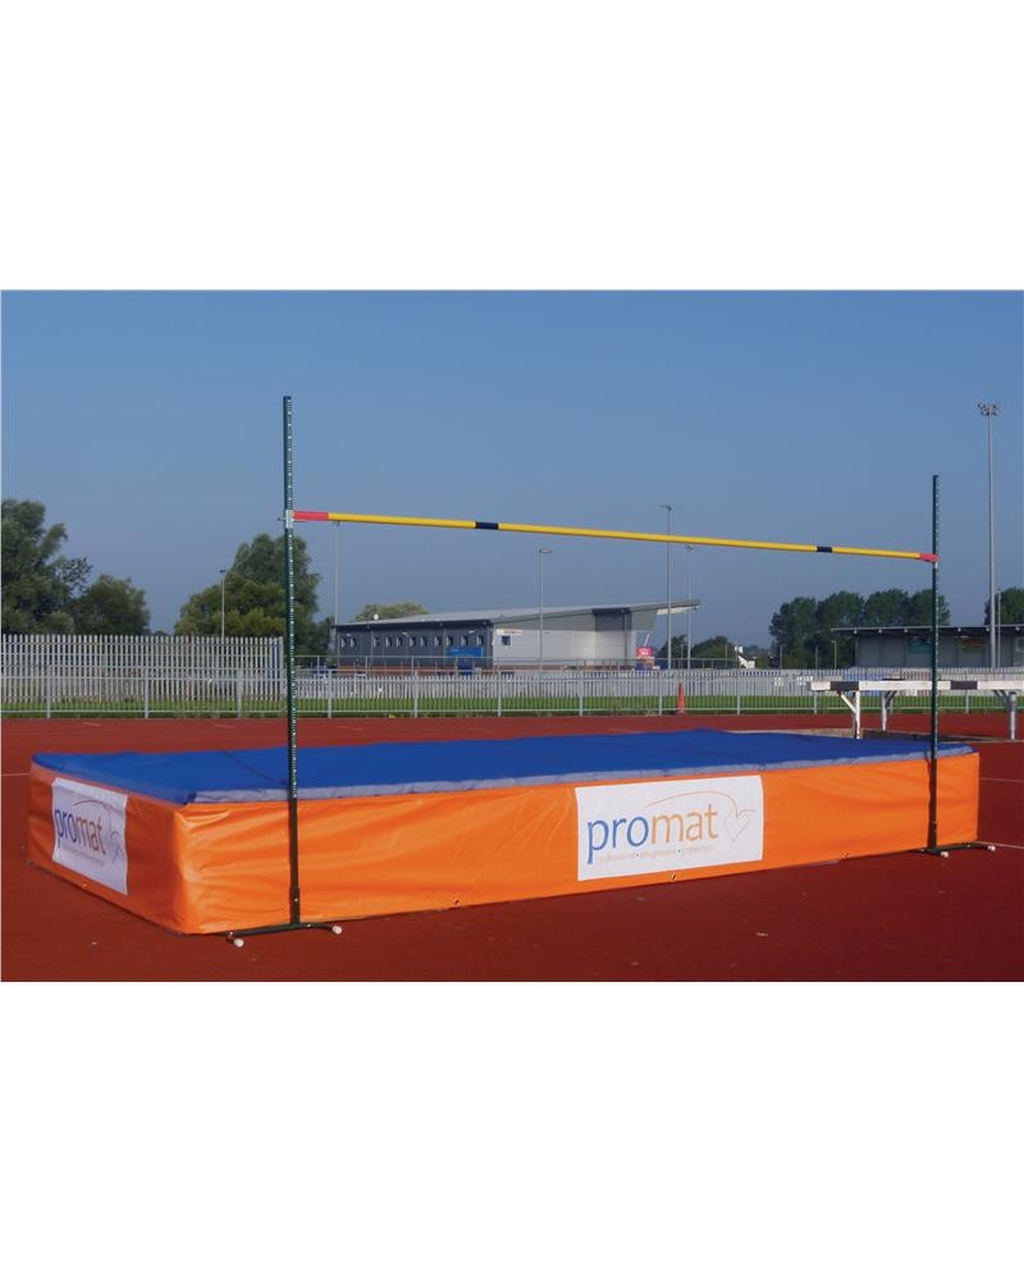 PROMAT SCHOOL HIGH JUMP PRO 7 5M X 2.5M X 510MM WITH RAIN COVER